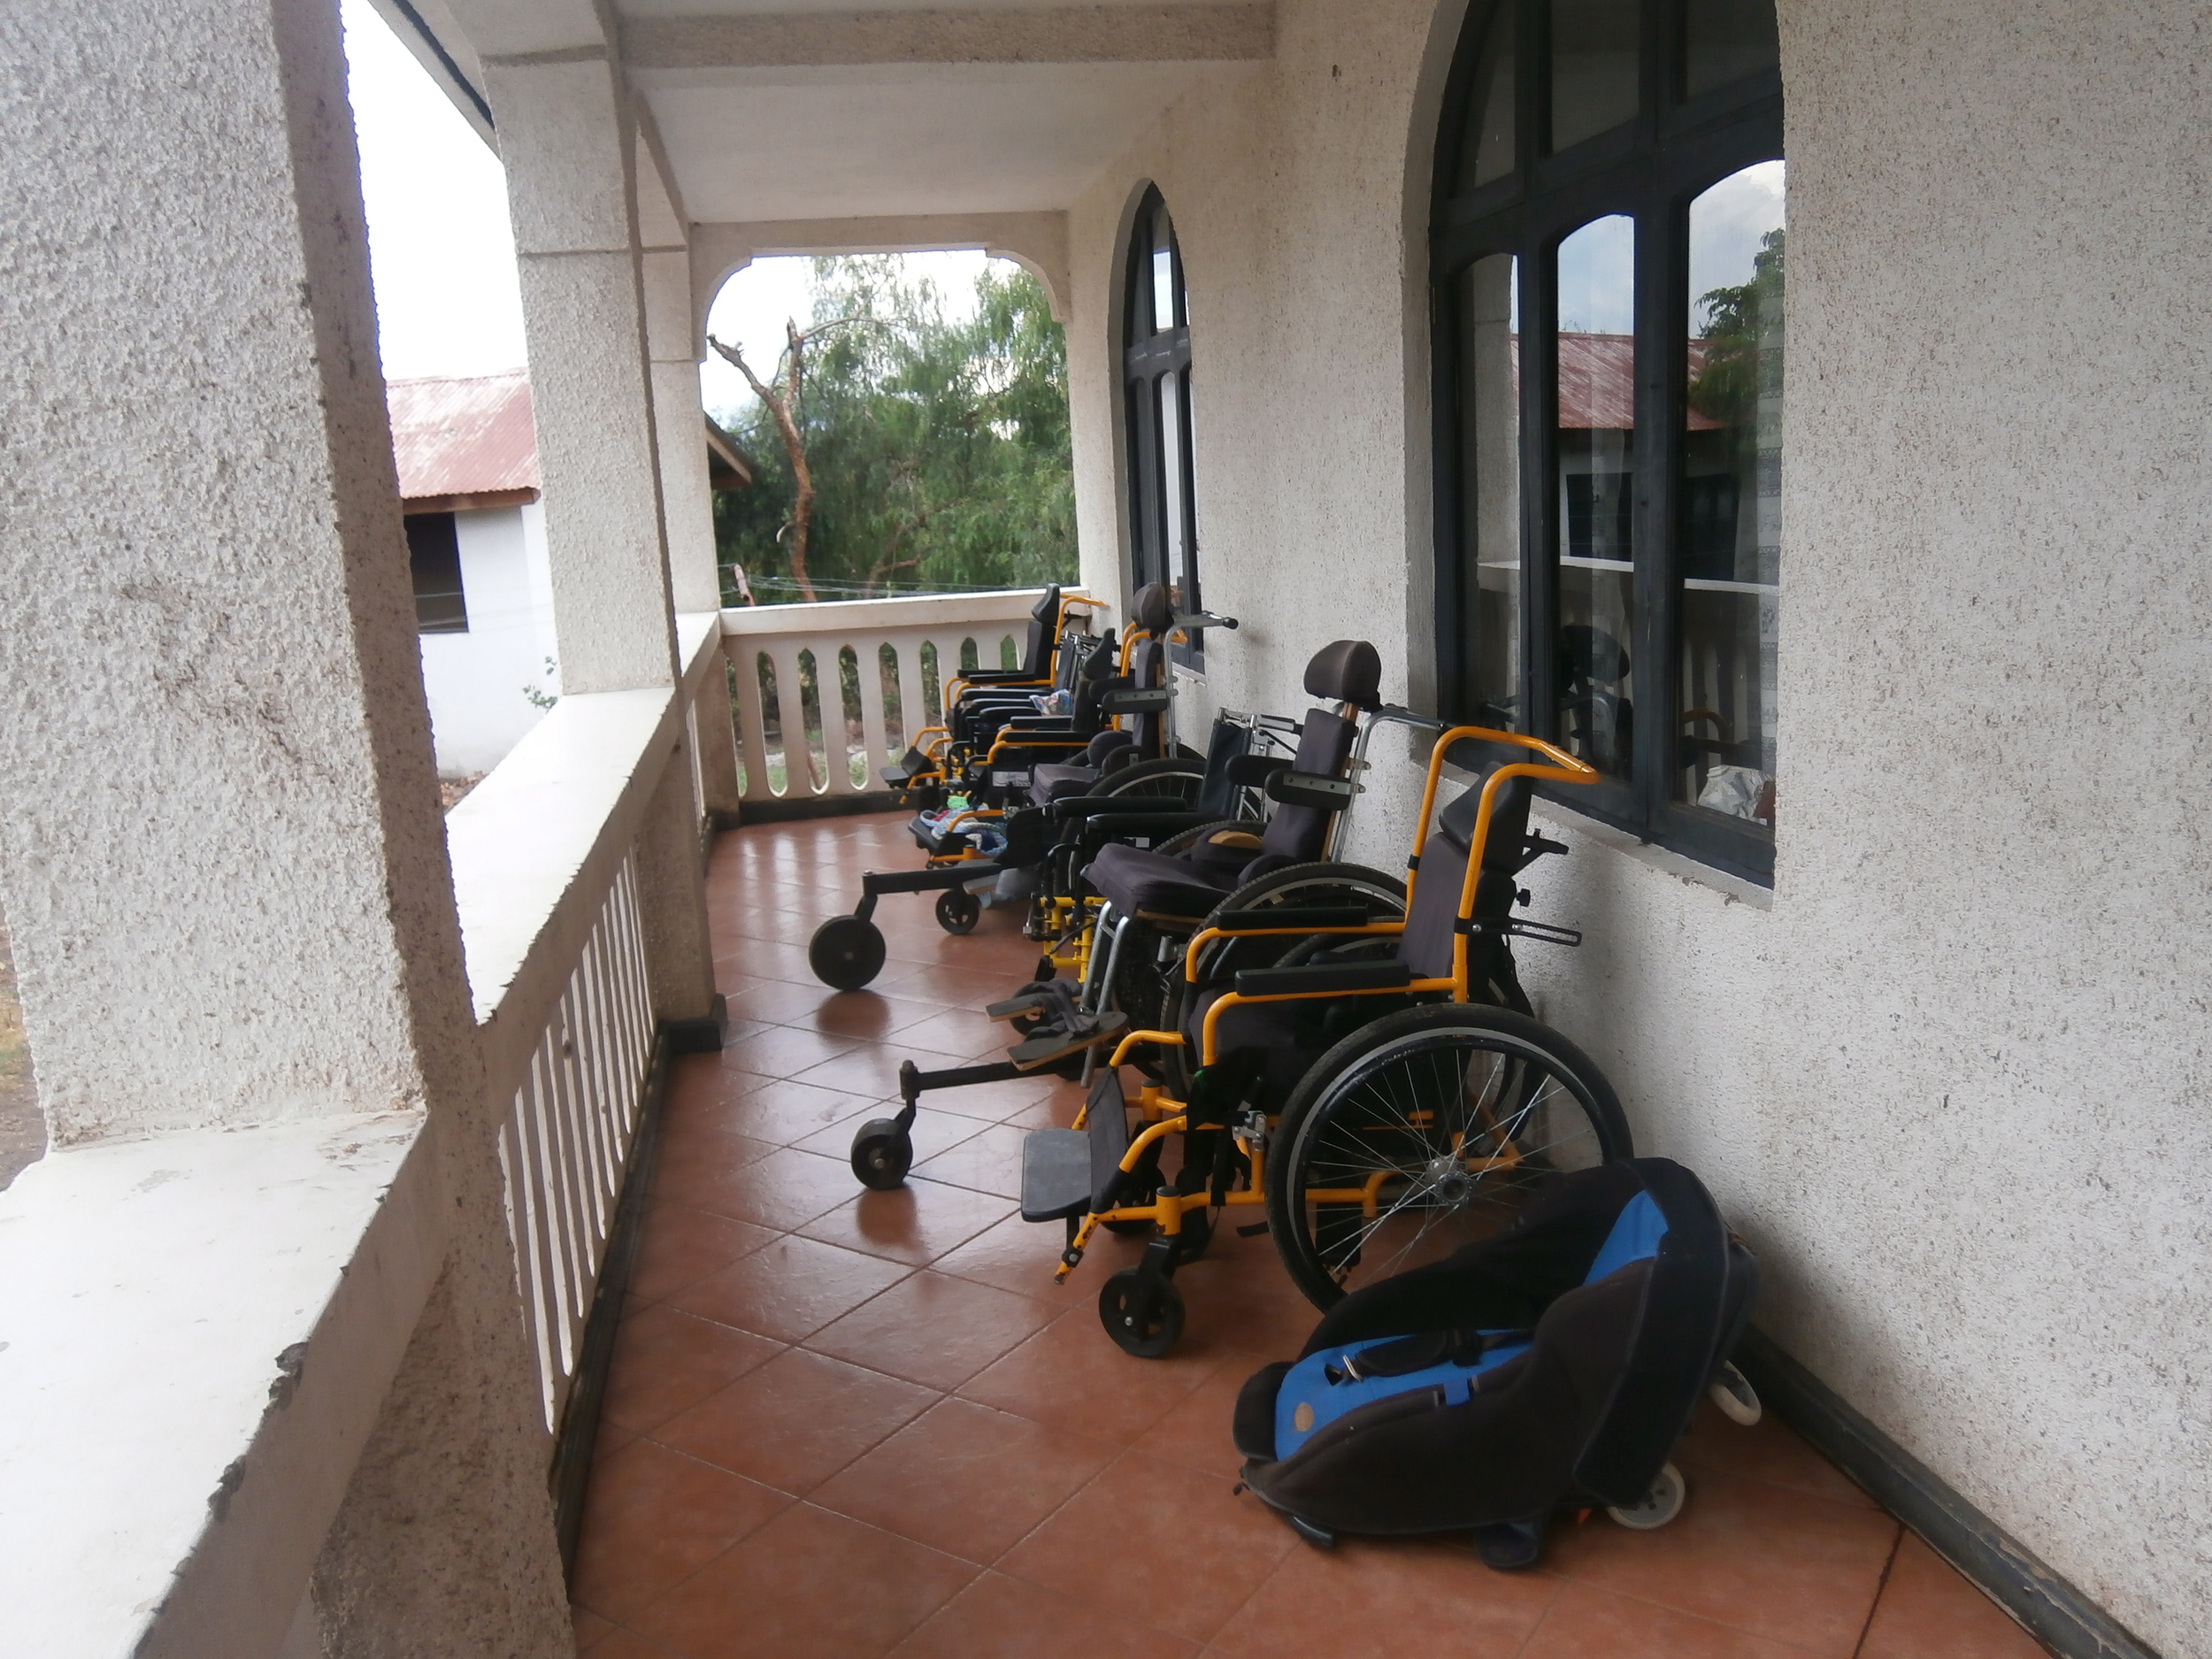 Wheelchairs lined up ready for use. Donated by Joni & Friends